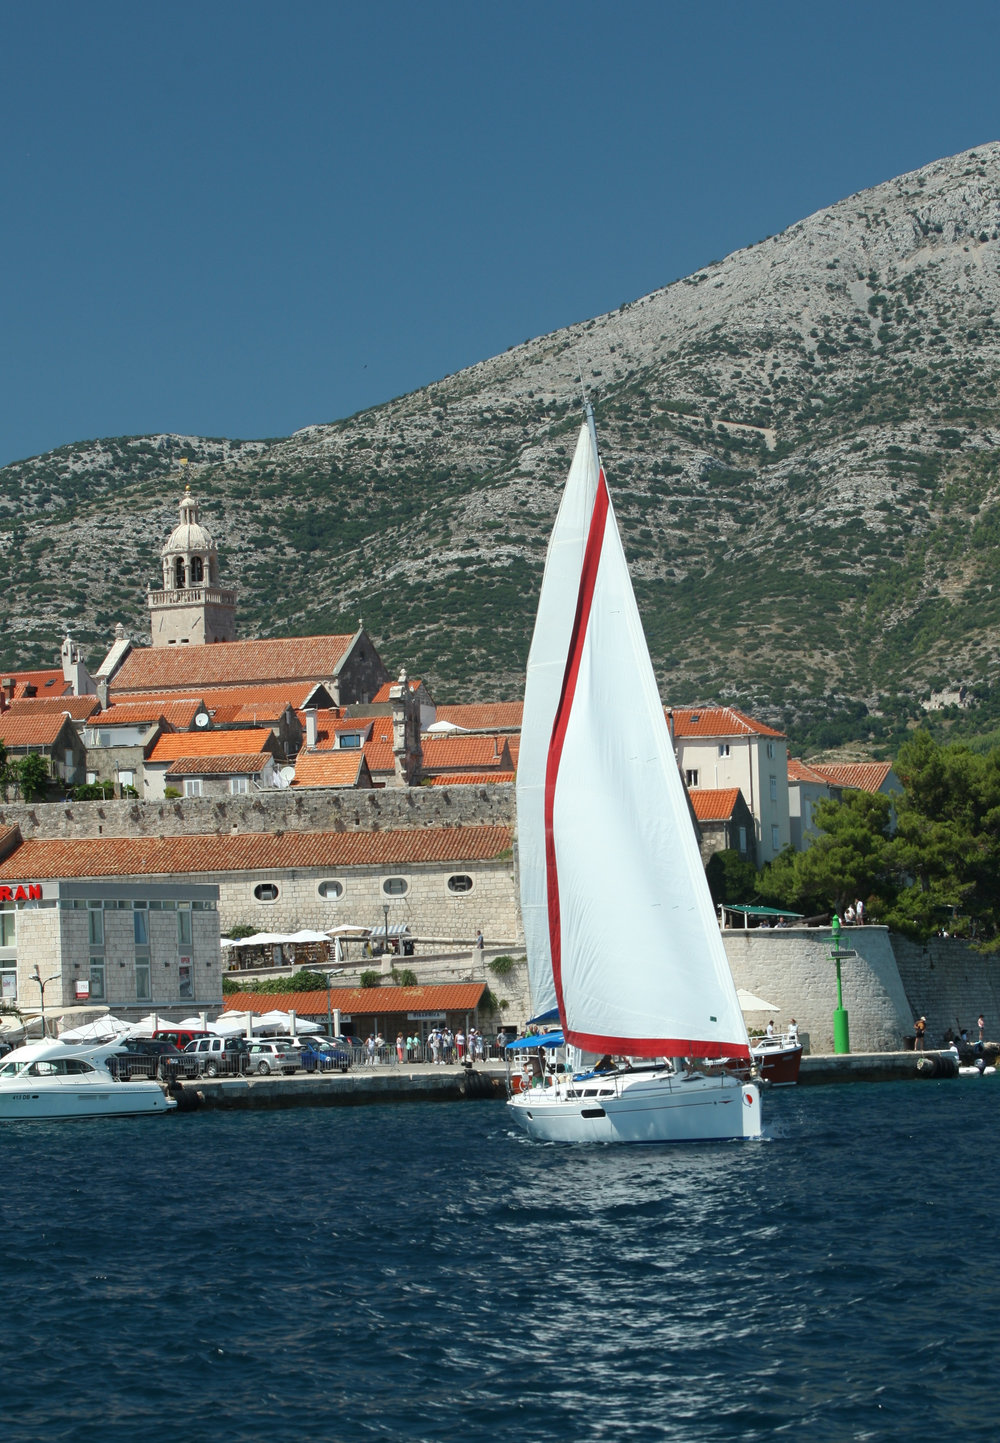 Under sail off Korcula